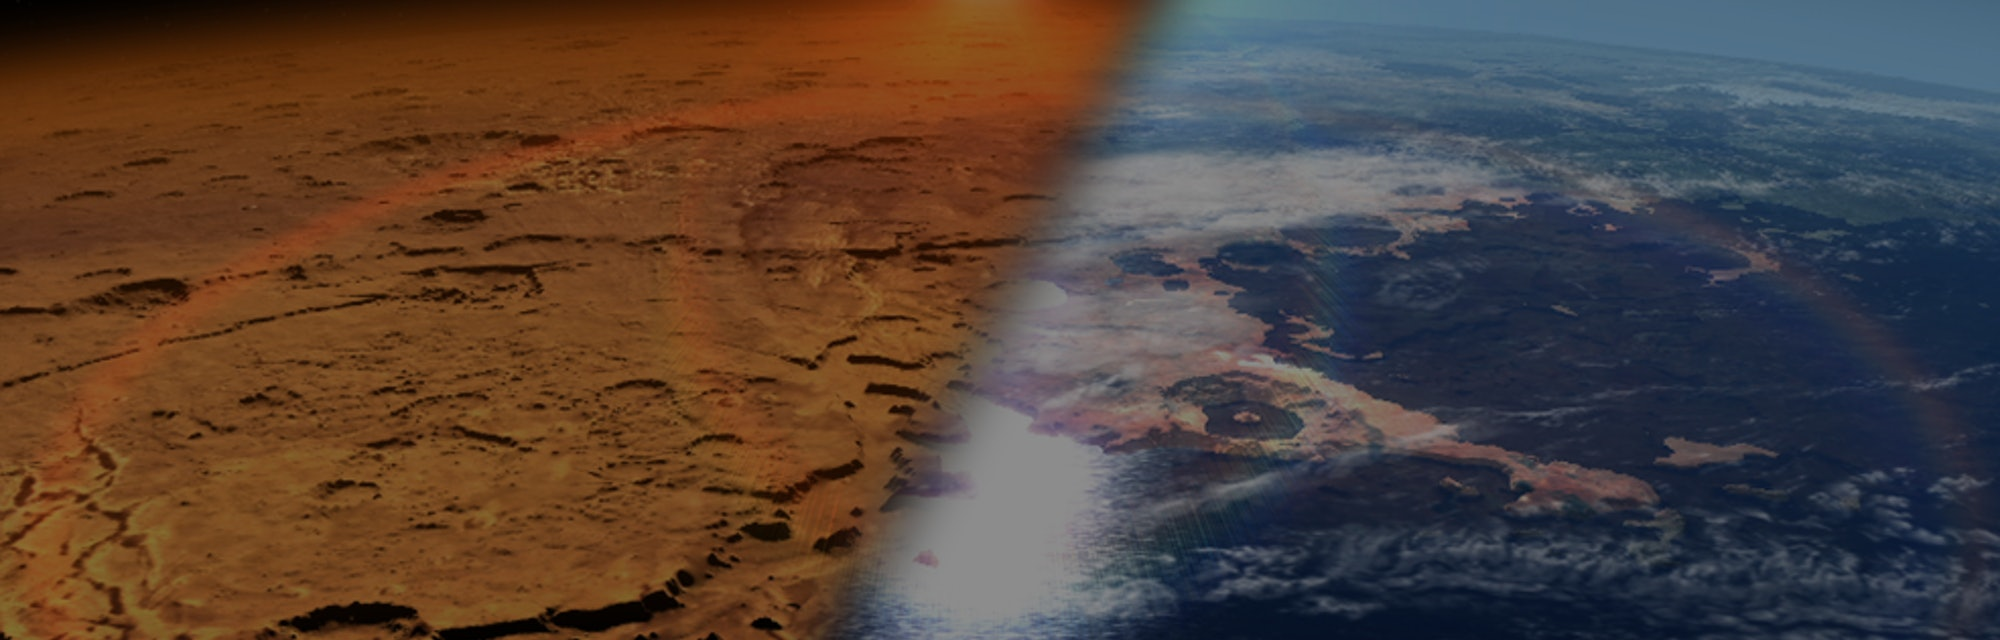 An illustration of two views of Mars: a desert world and its past as a watery world.